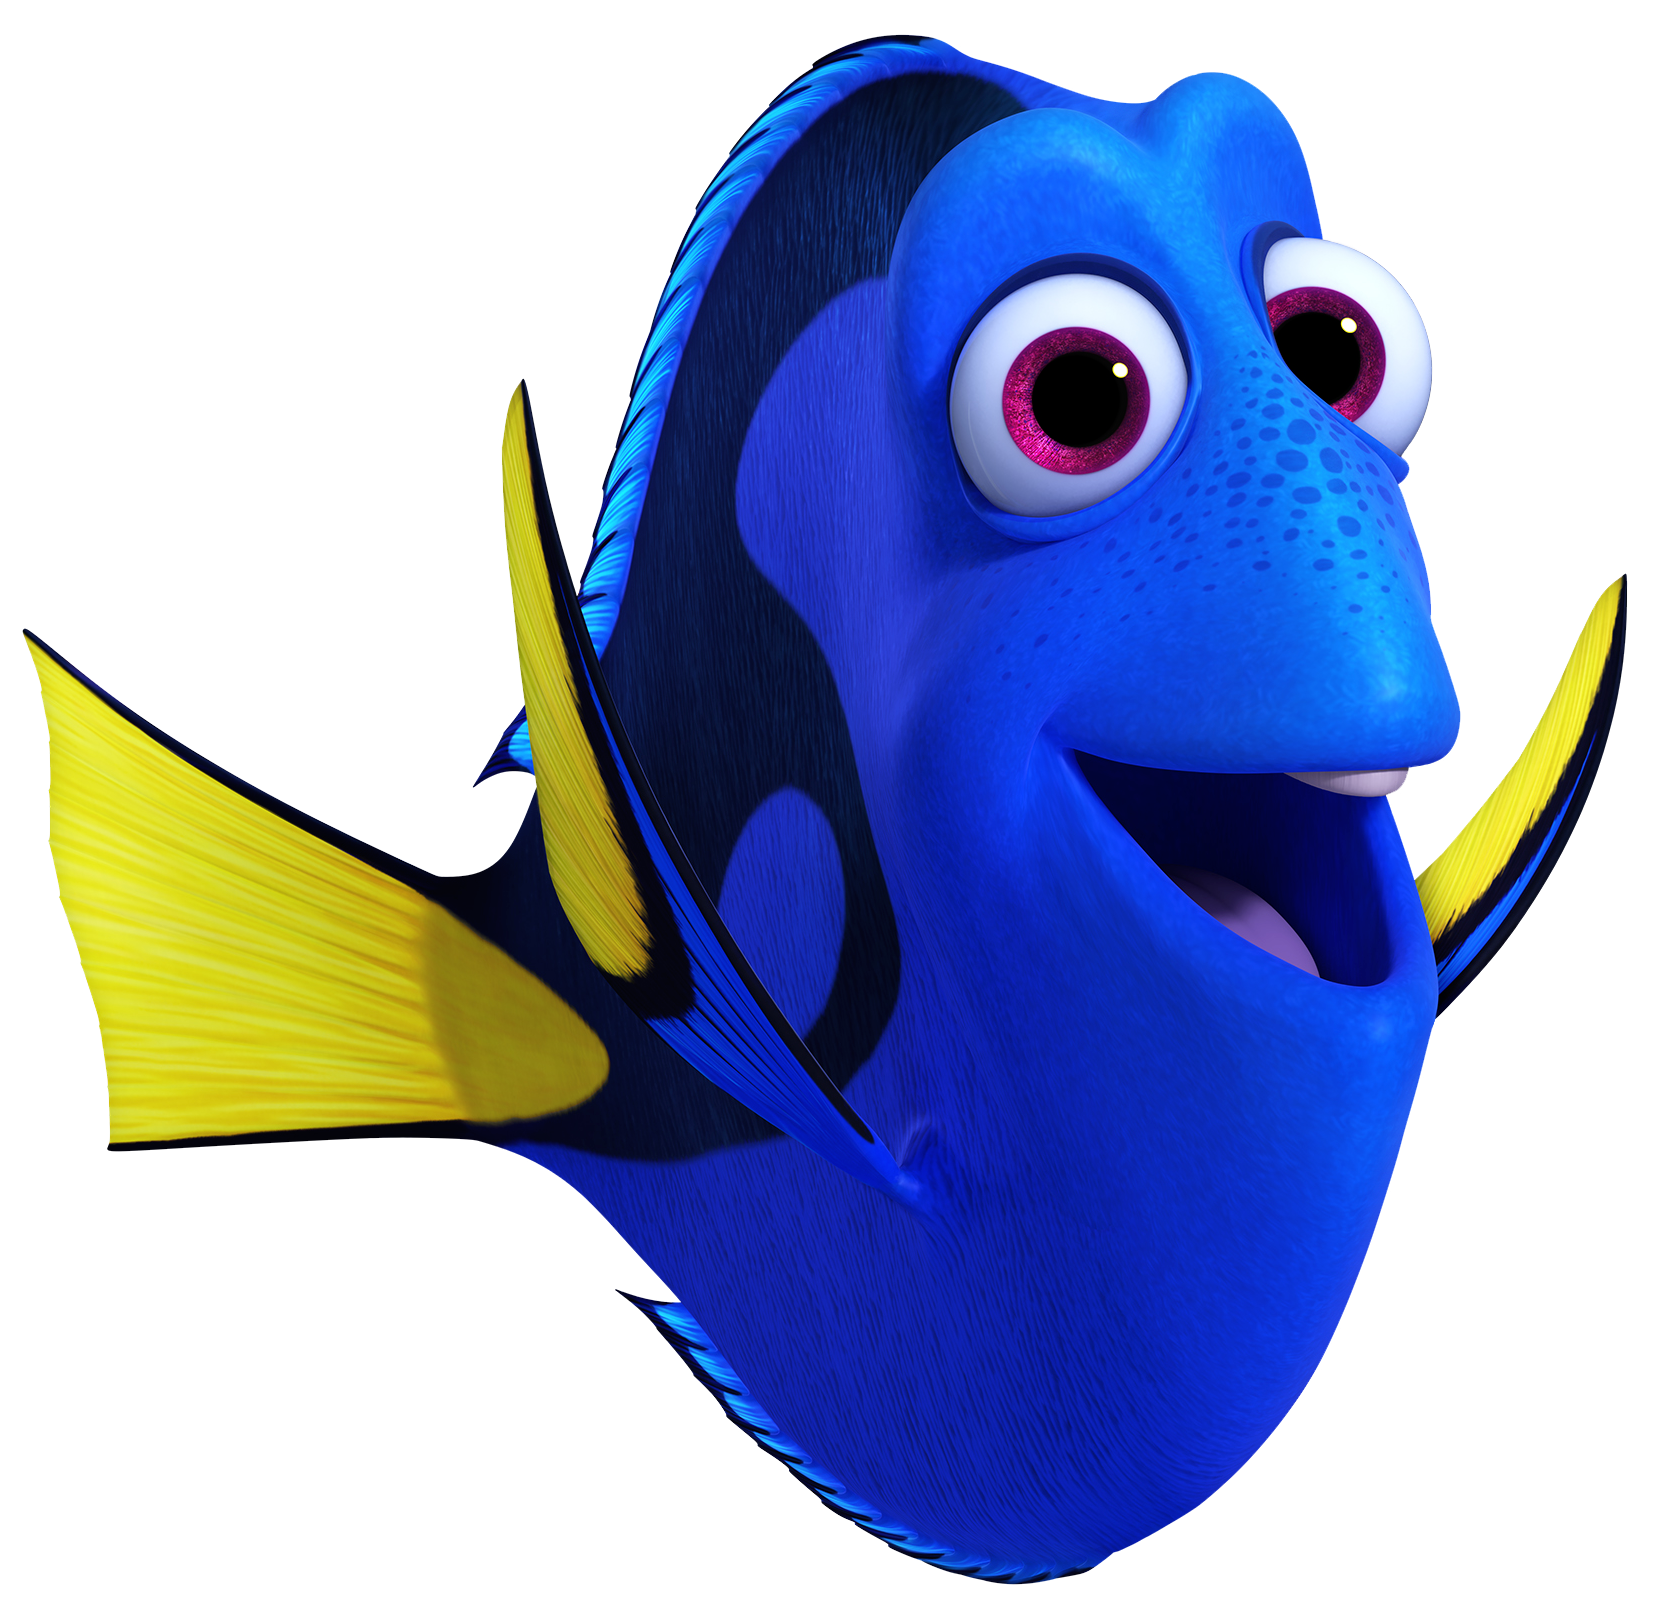 finding dory dory transparent png clip art image imagenes rh pinterest co uk finding nemo clipart black and white finding nemo dory clipart